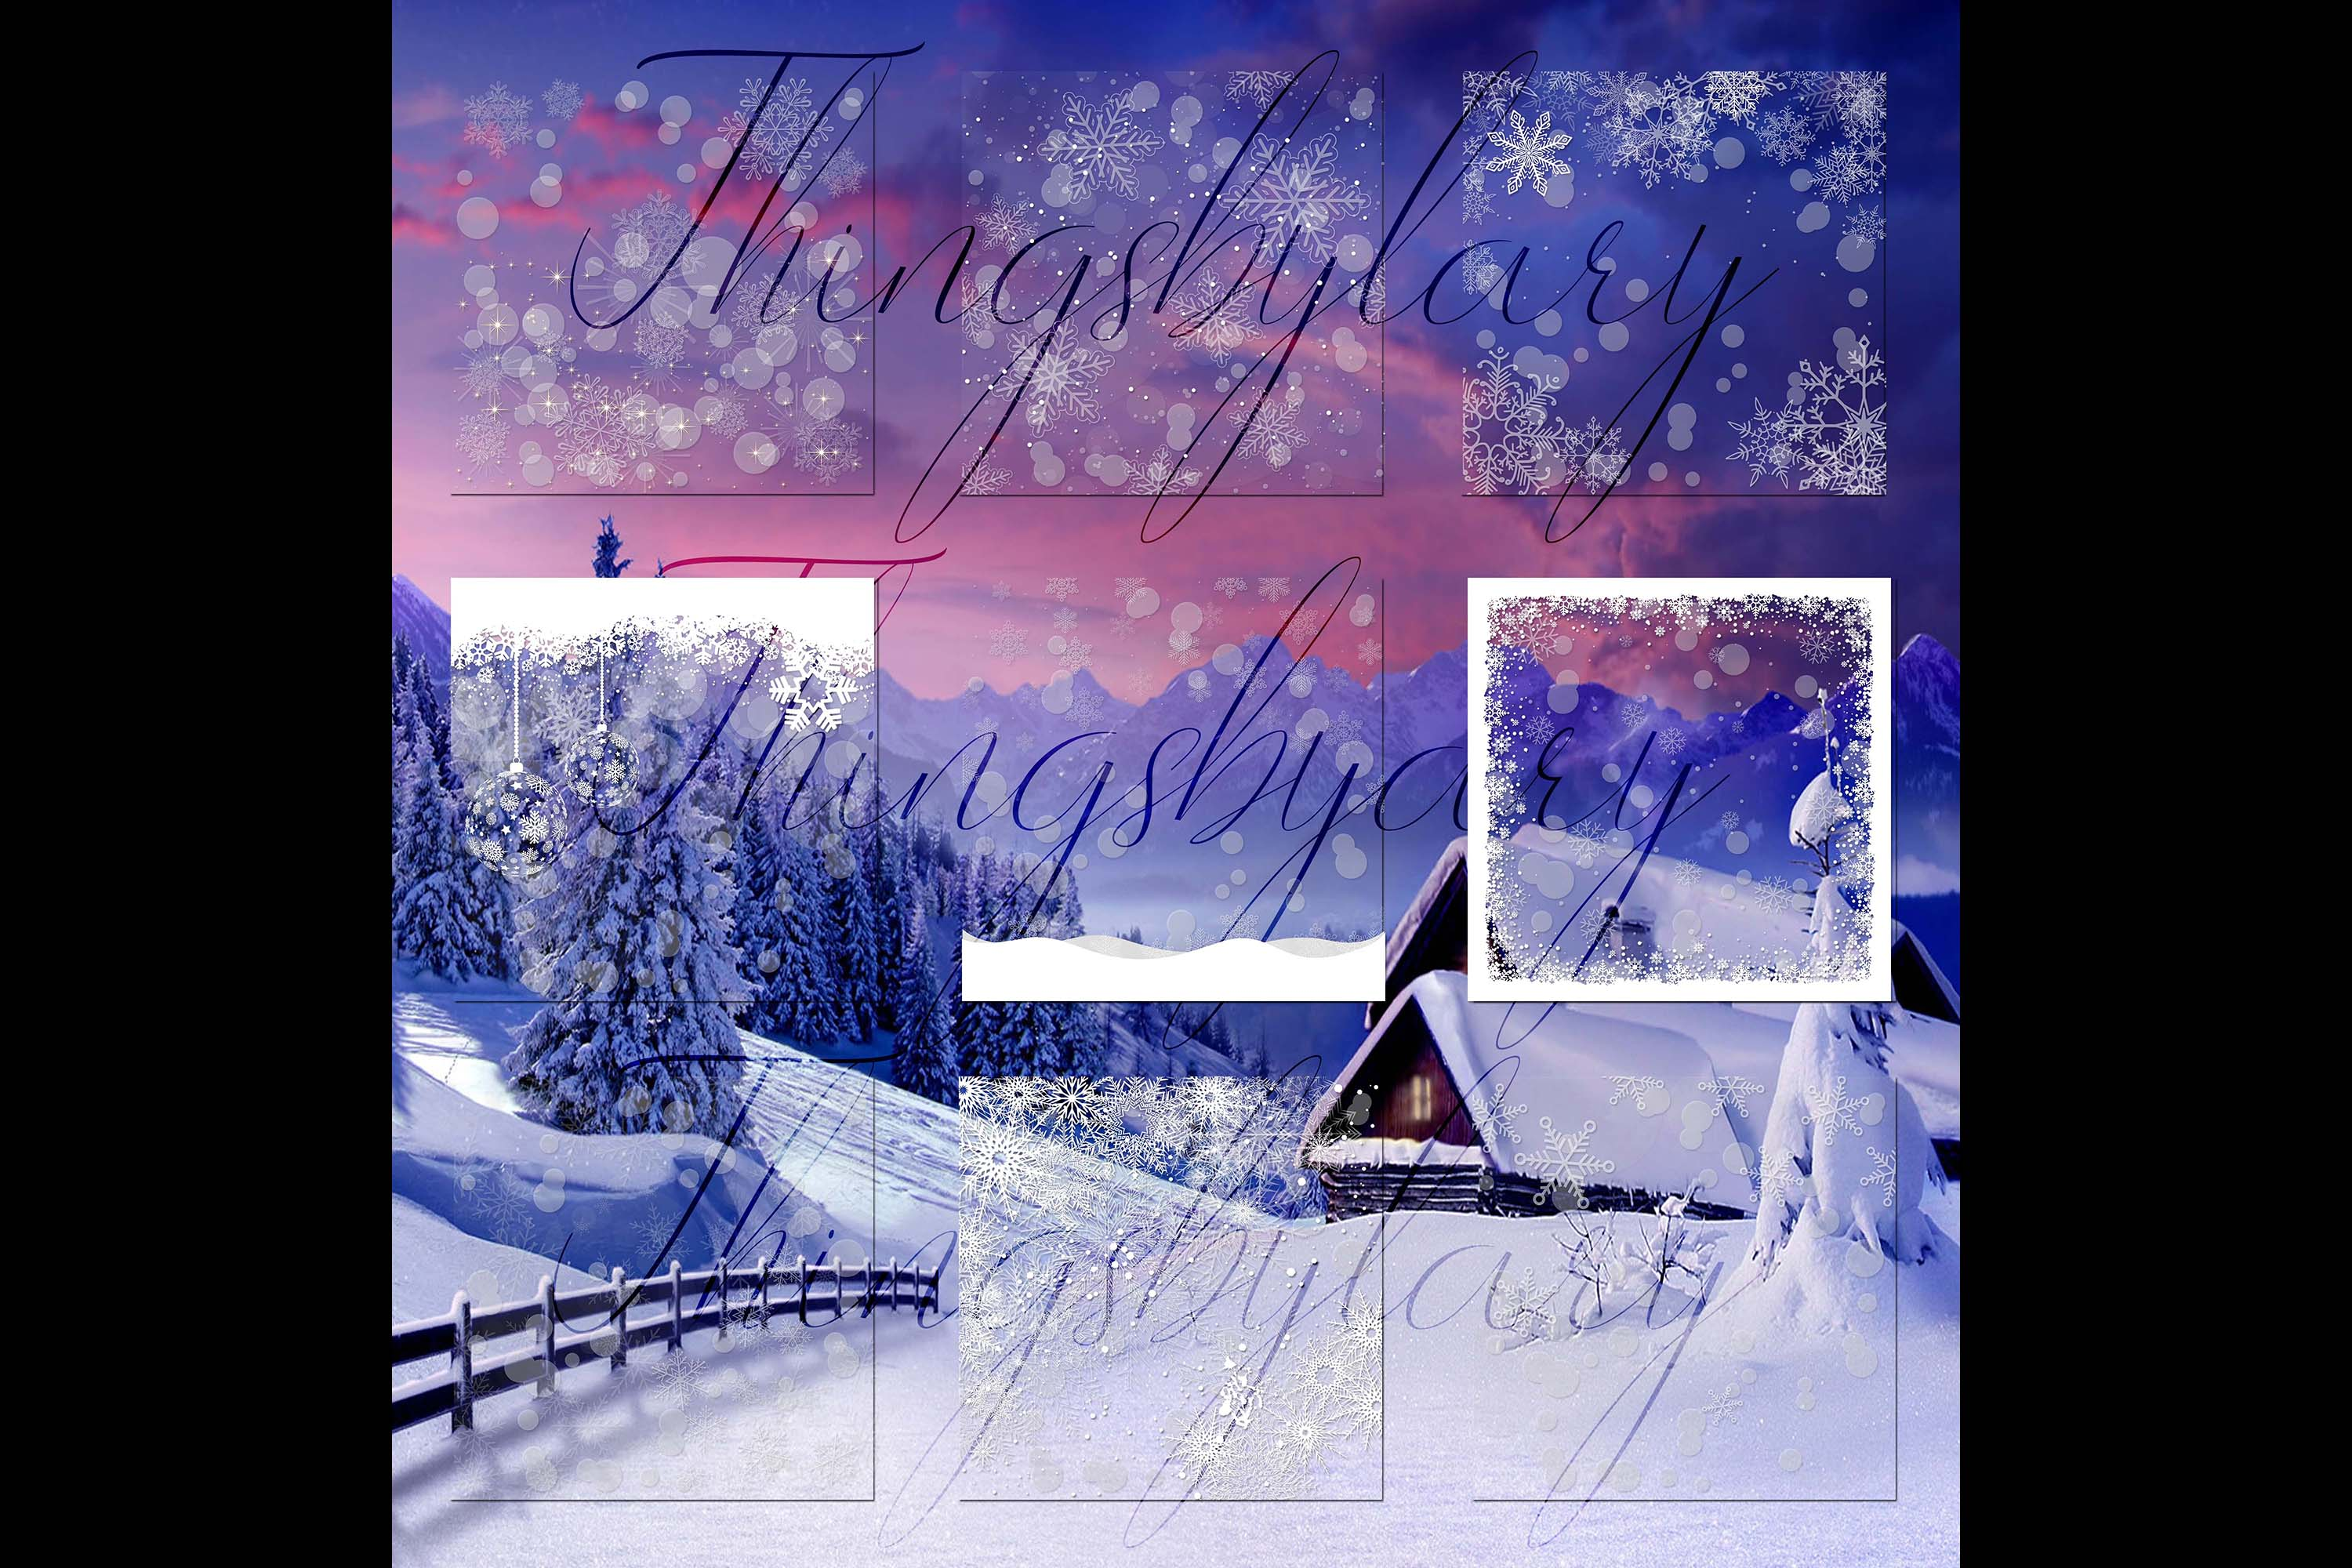 27 Falling Snowflakes Overlay Digital Images PNG Transparent example image 9